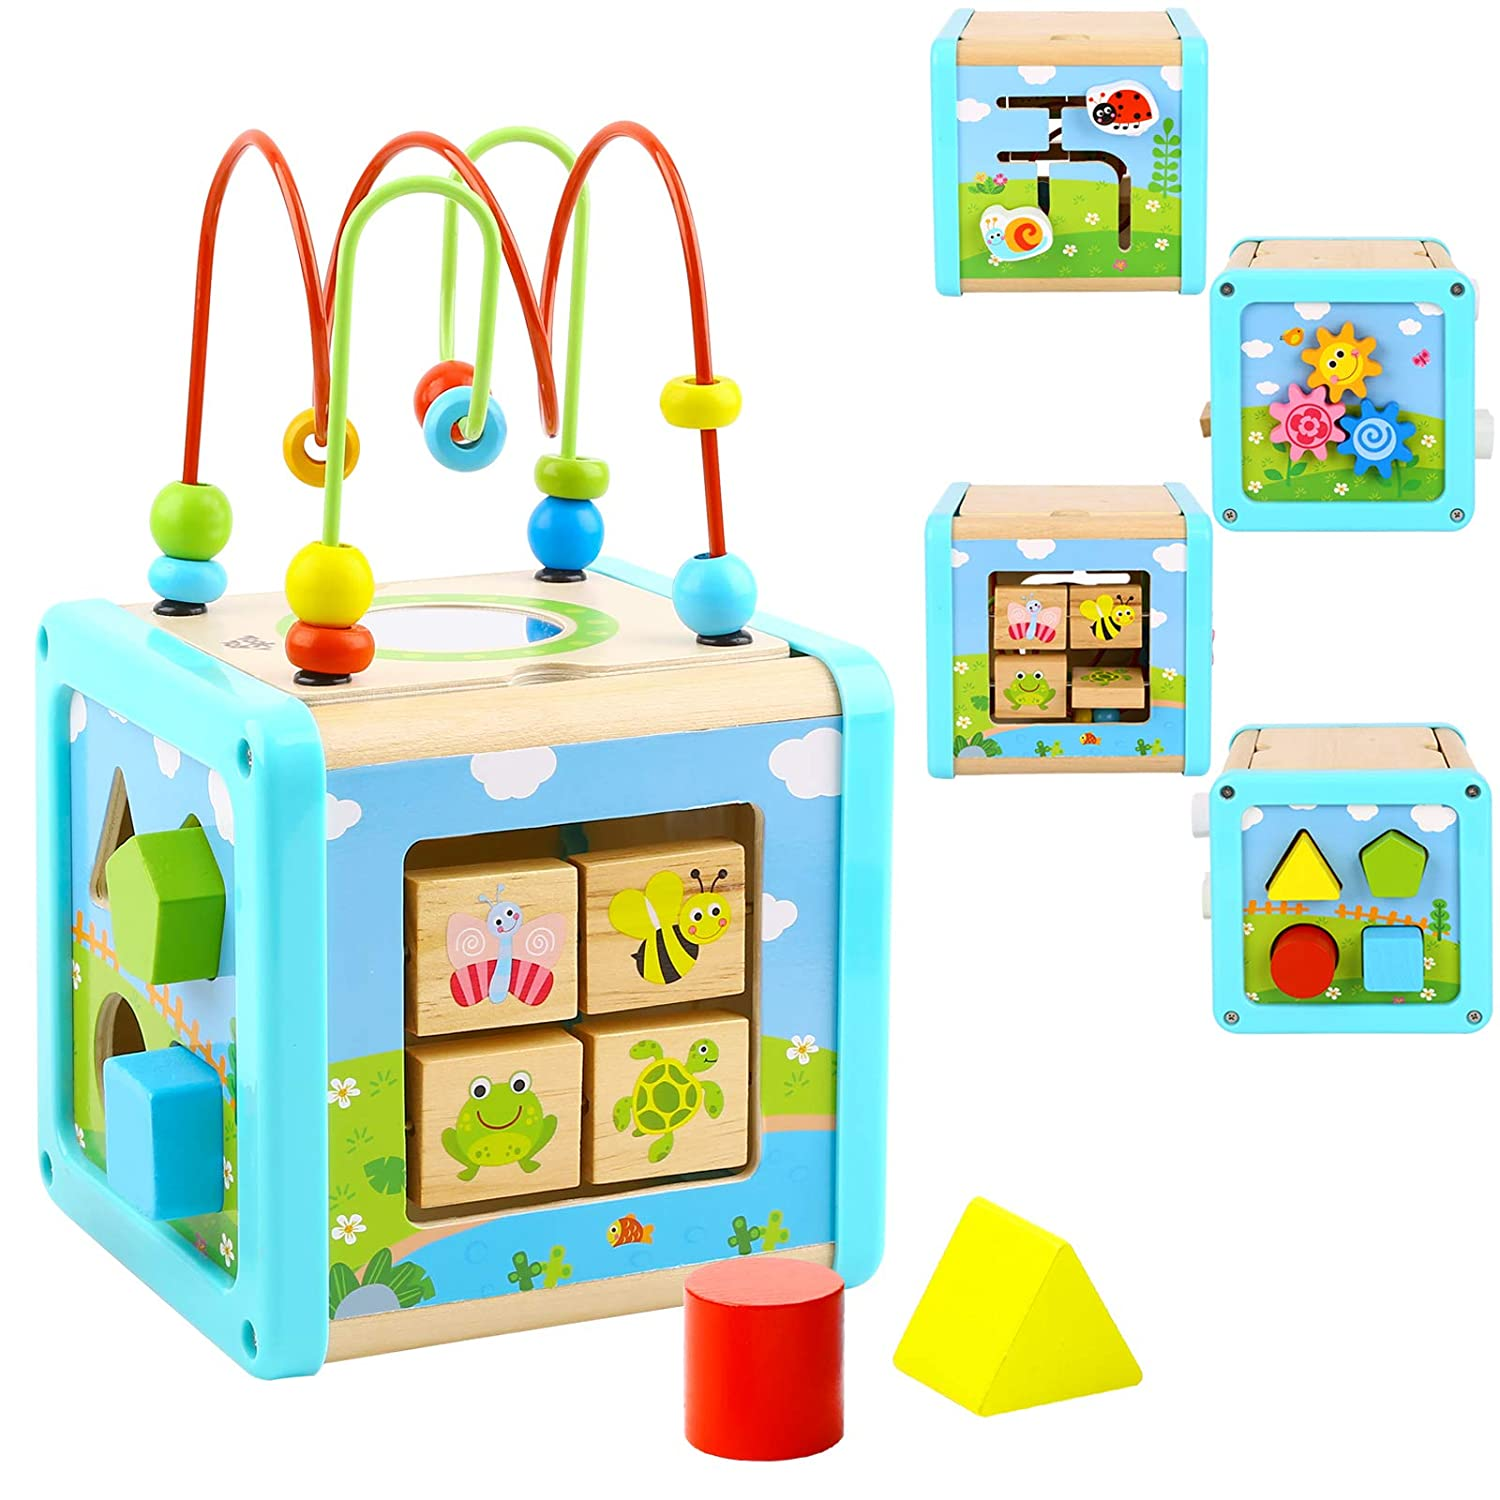 TOOKYLAND Activity Cube Japan's largest assortment Wooden Toys Outlet ☆ Free Shipping Learn Maze Shape Bead Sorter